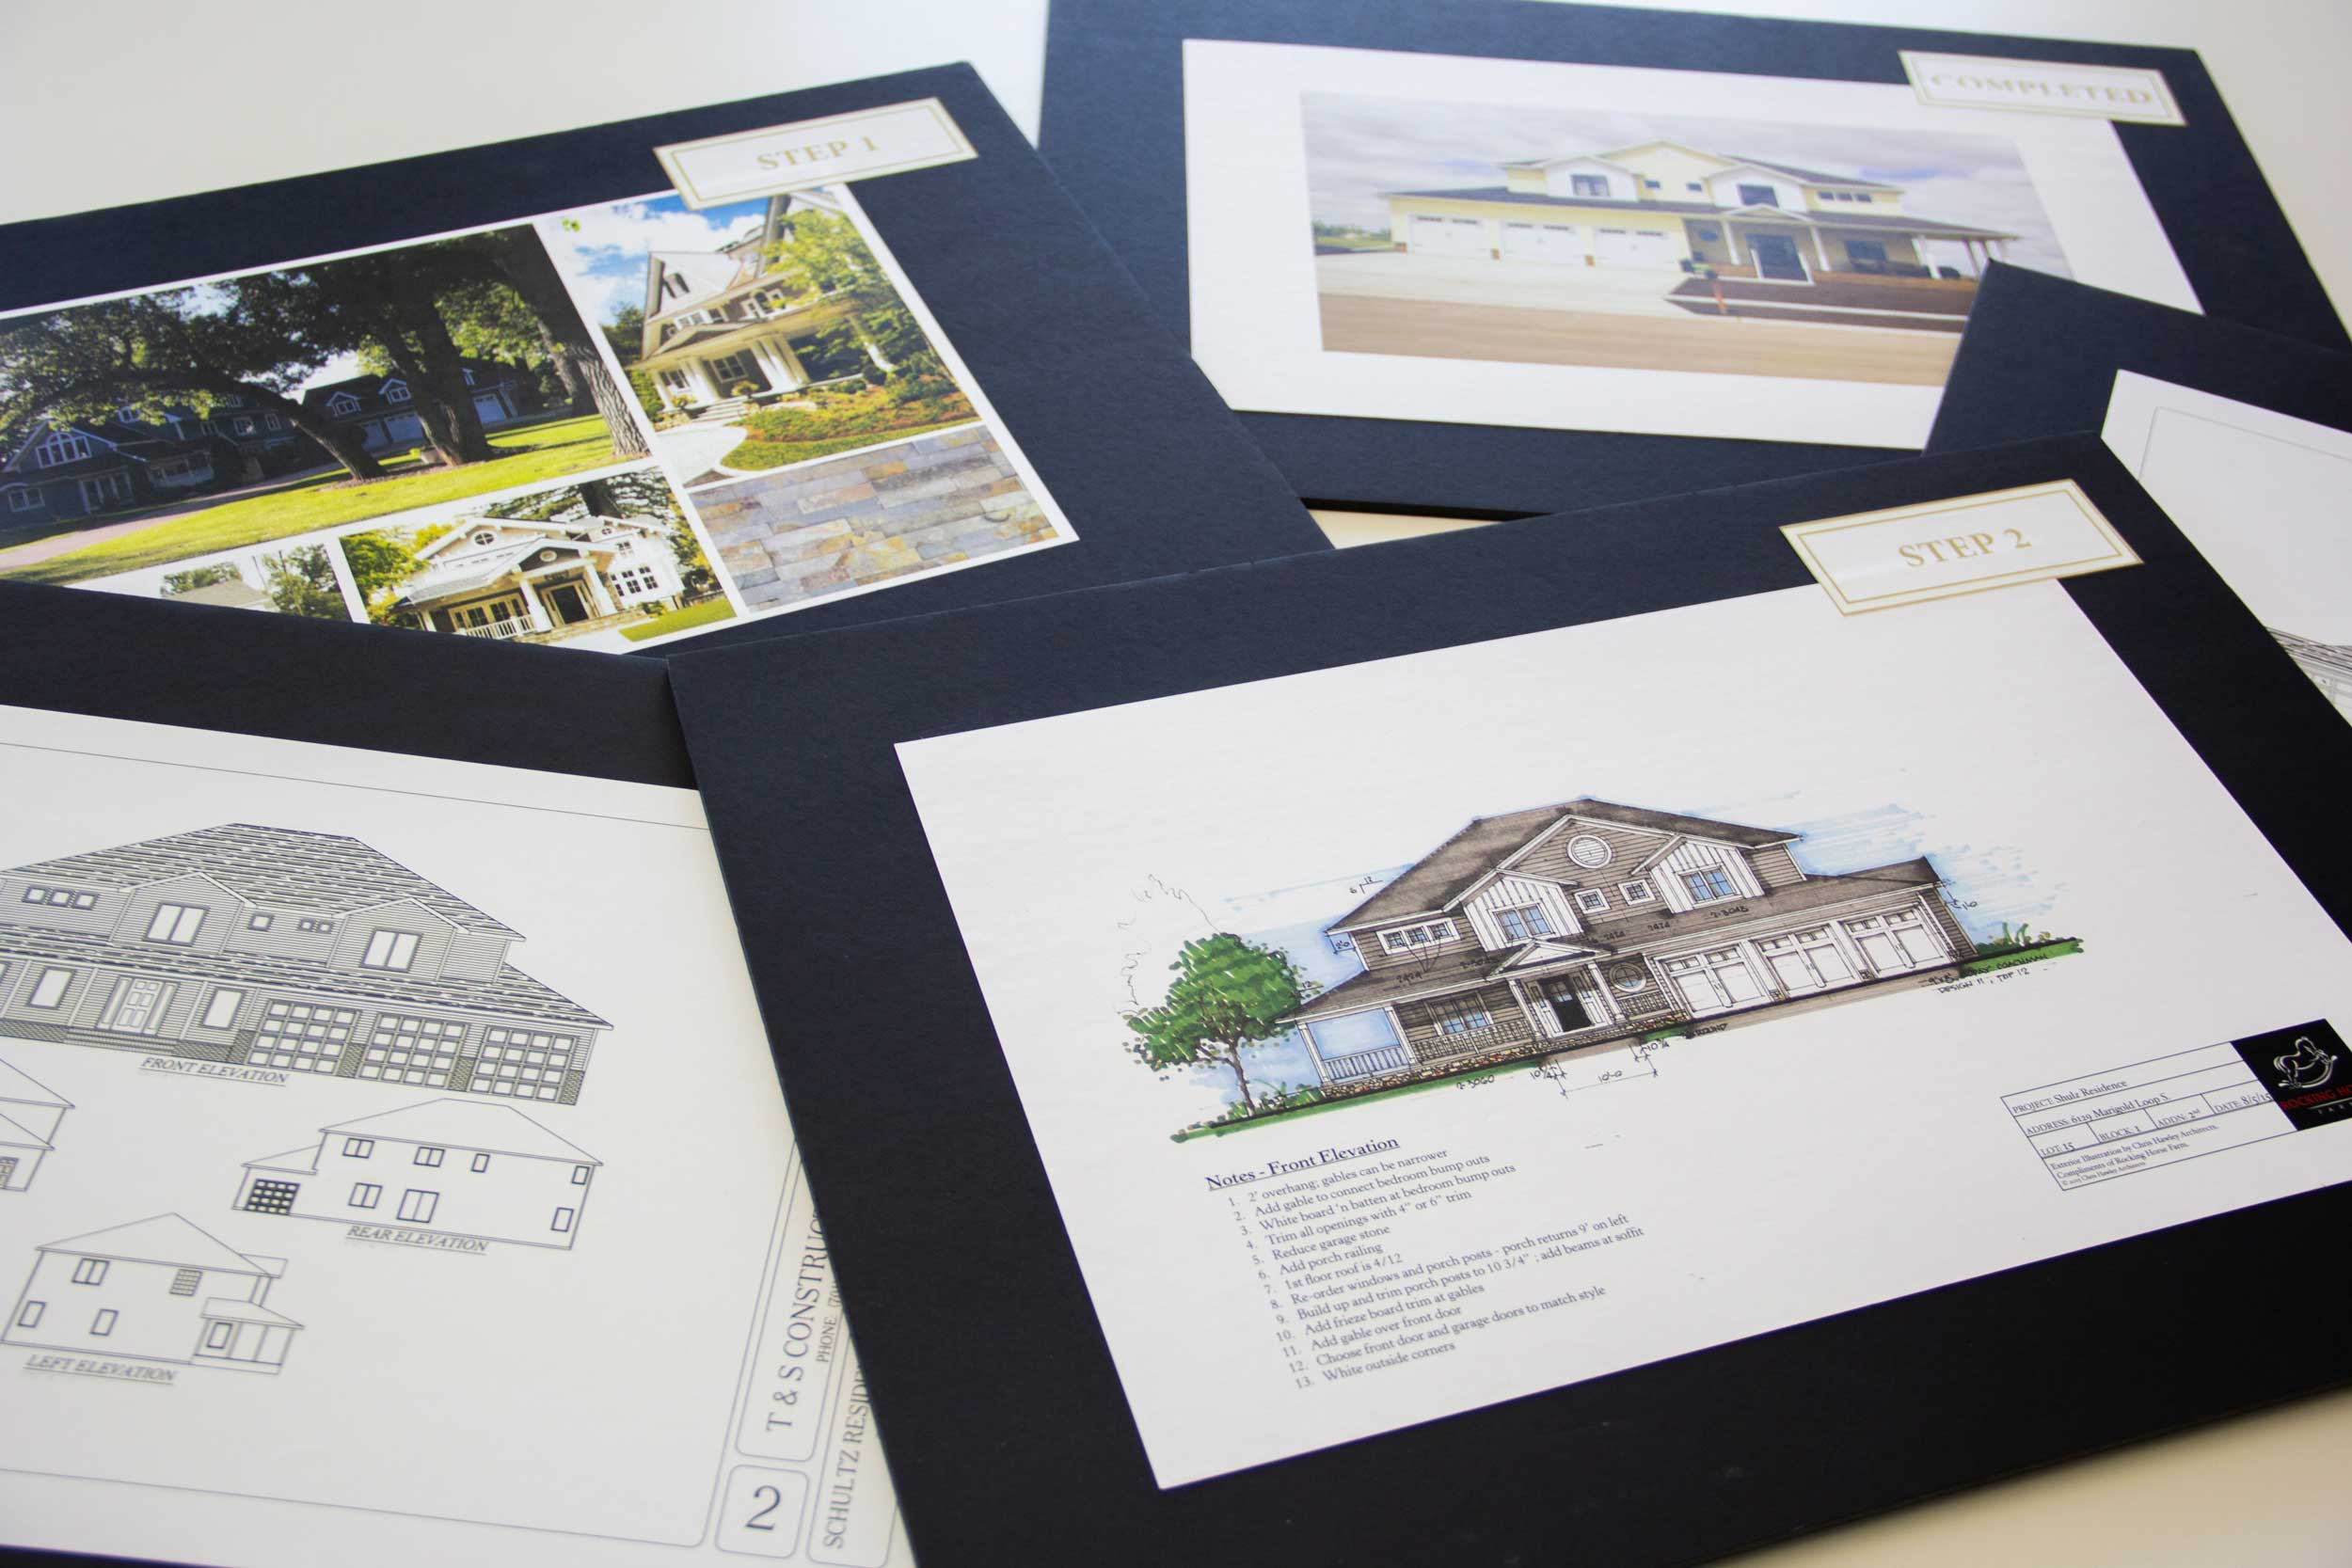 Submit Building Plans -